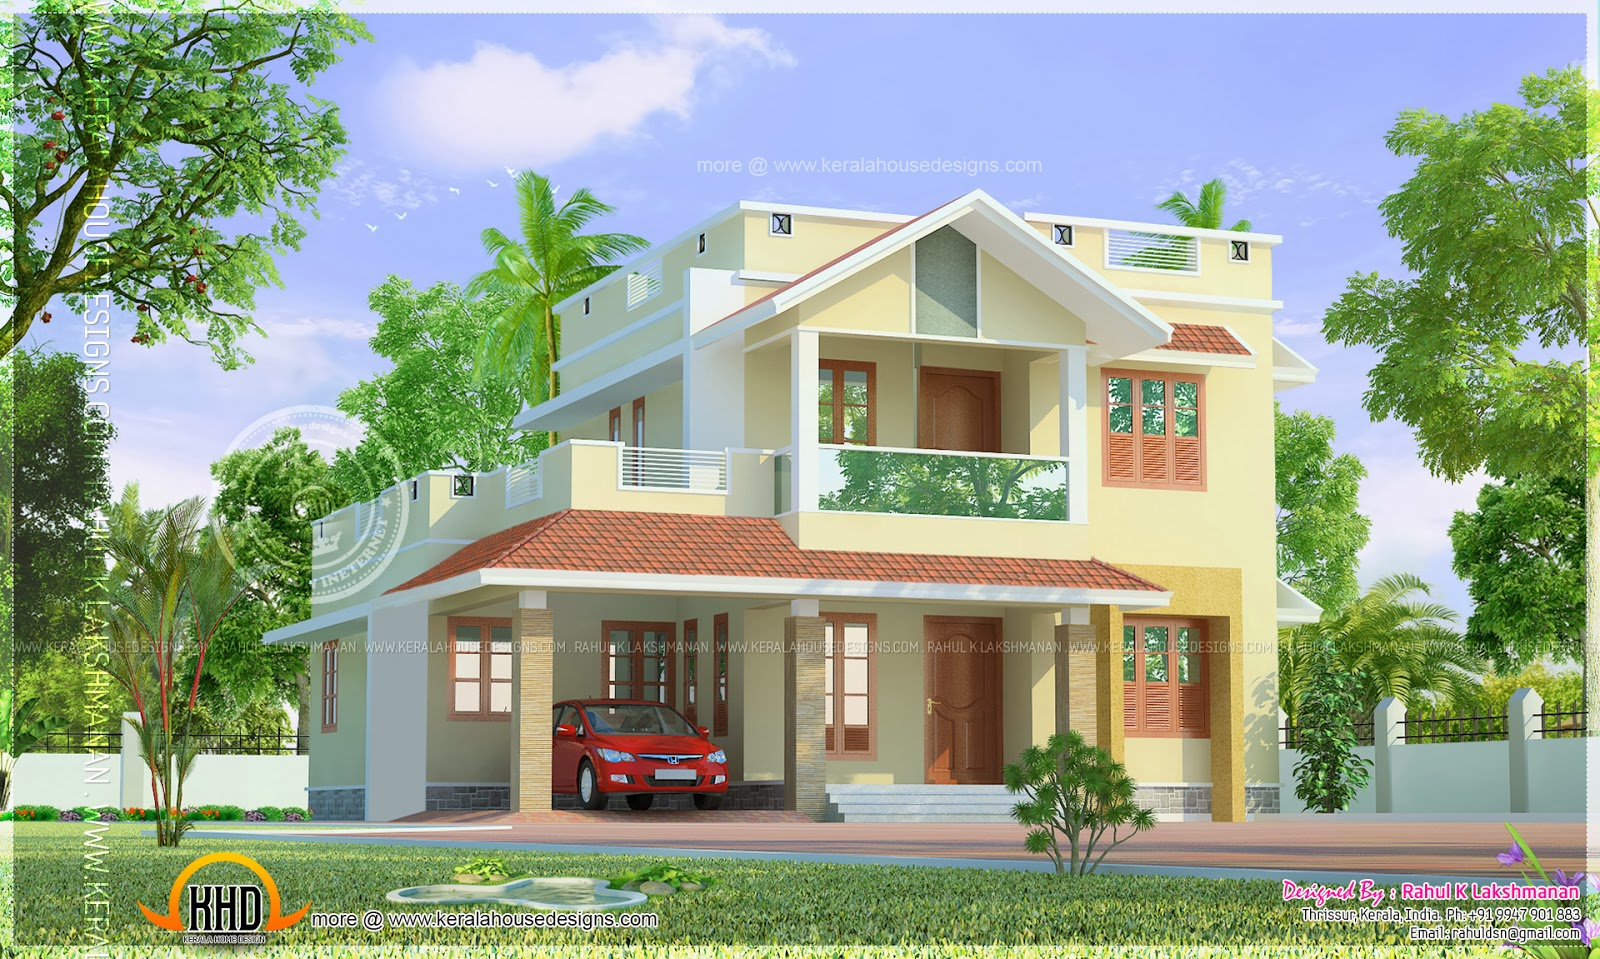 Cute little two storied home design kerala home design for Design small house pictures